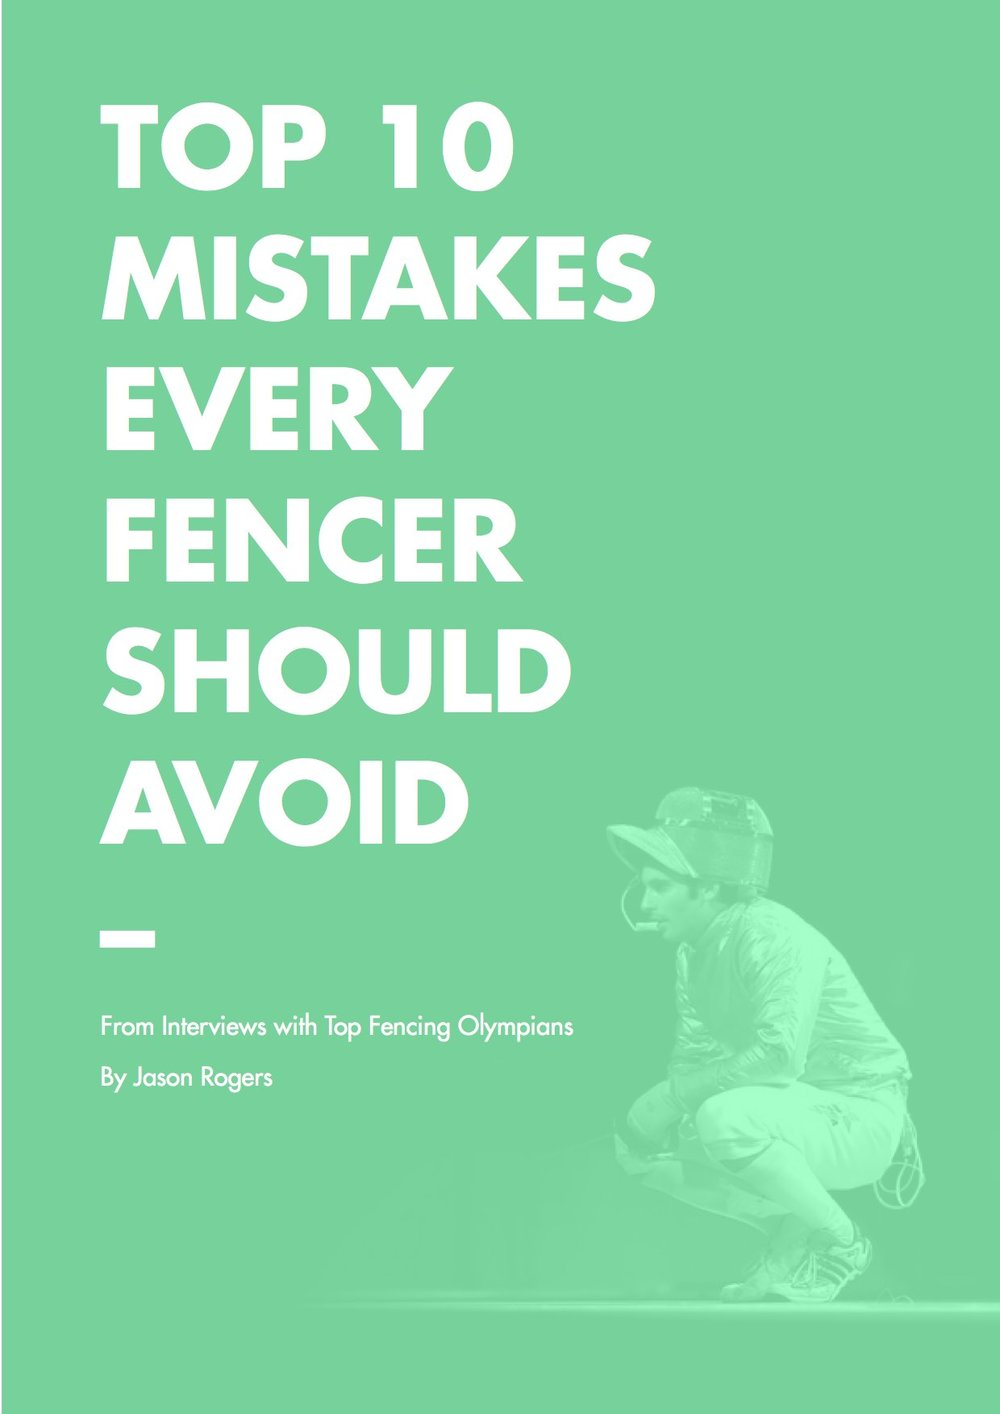 The guide to the top 10 mistakes every fencer should avoid written by Better Fencer and Jason Rogers